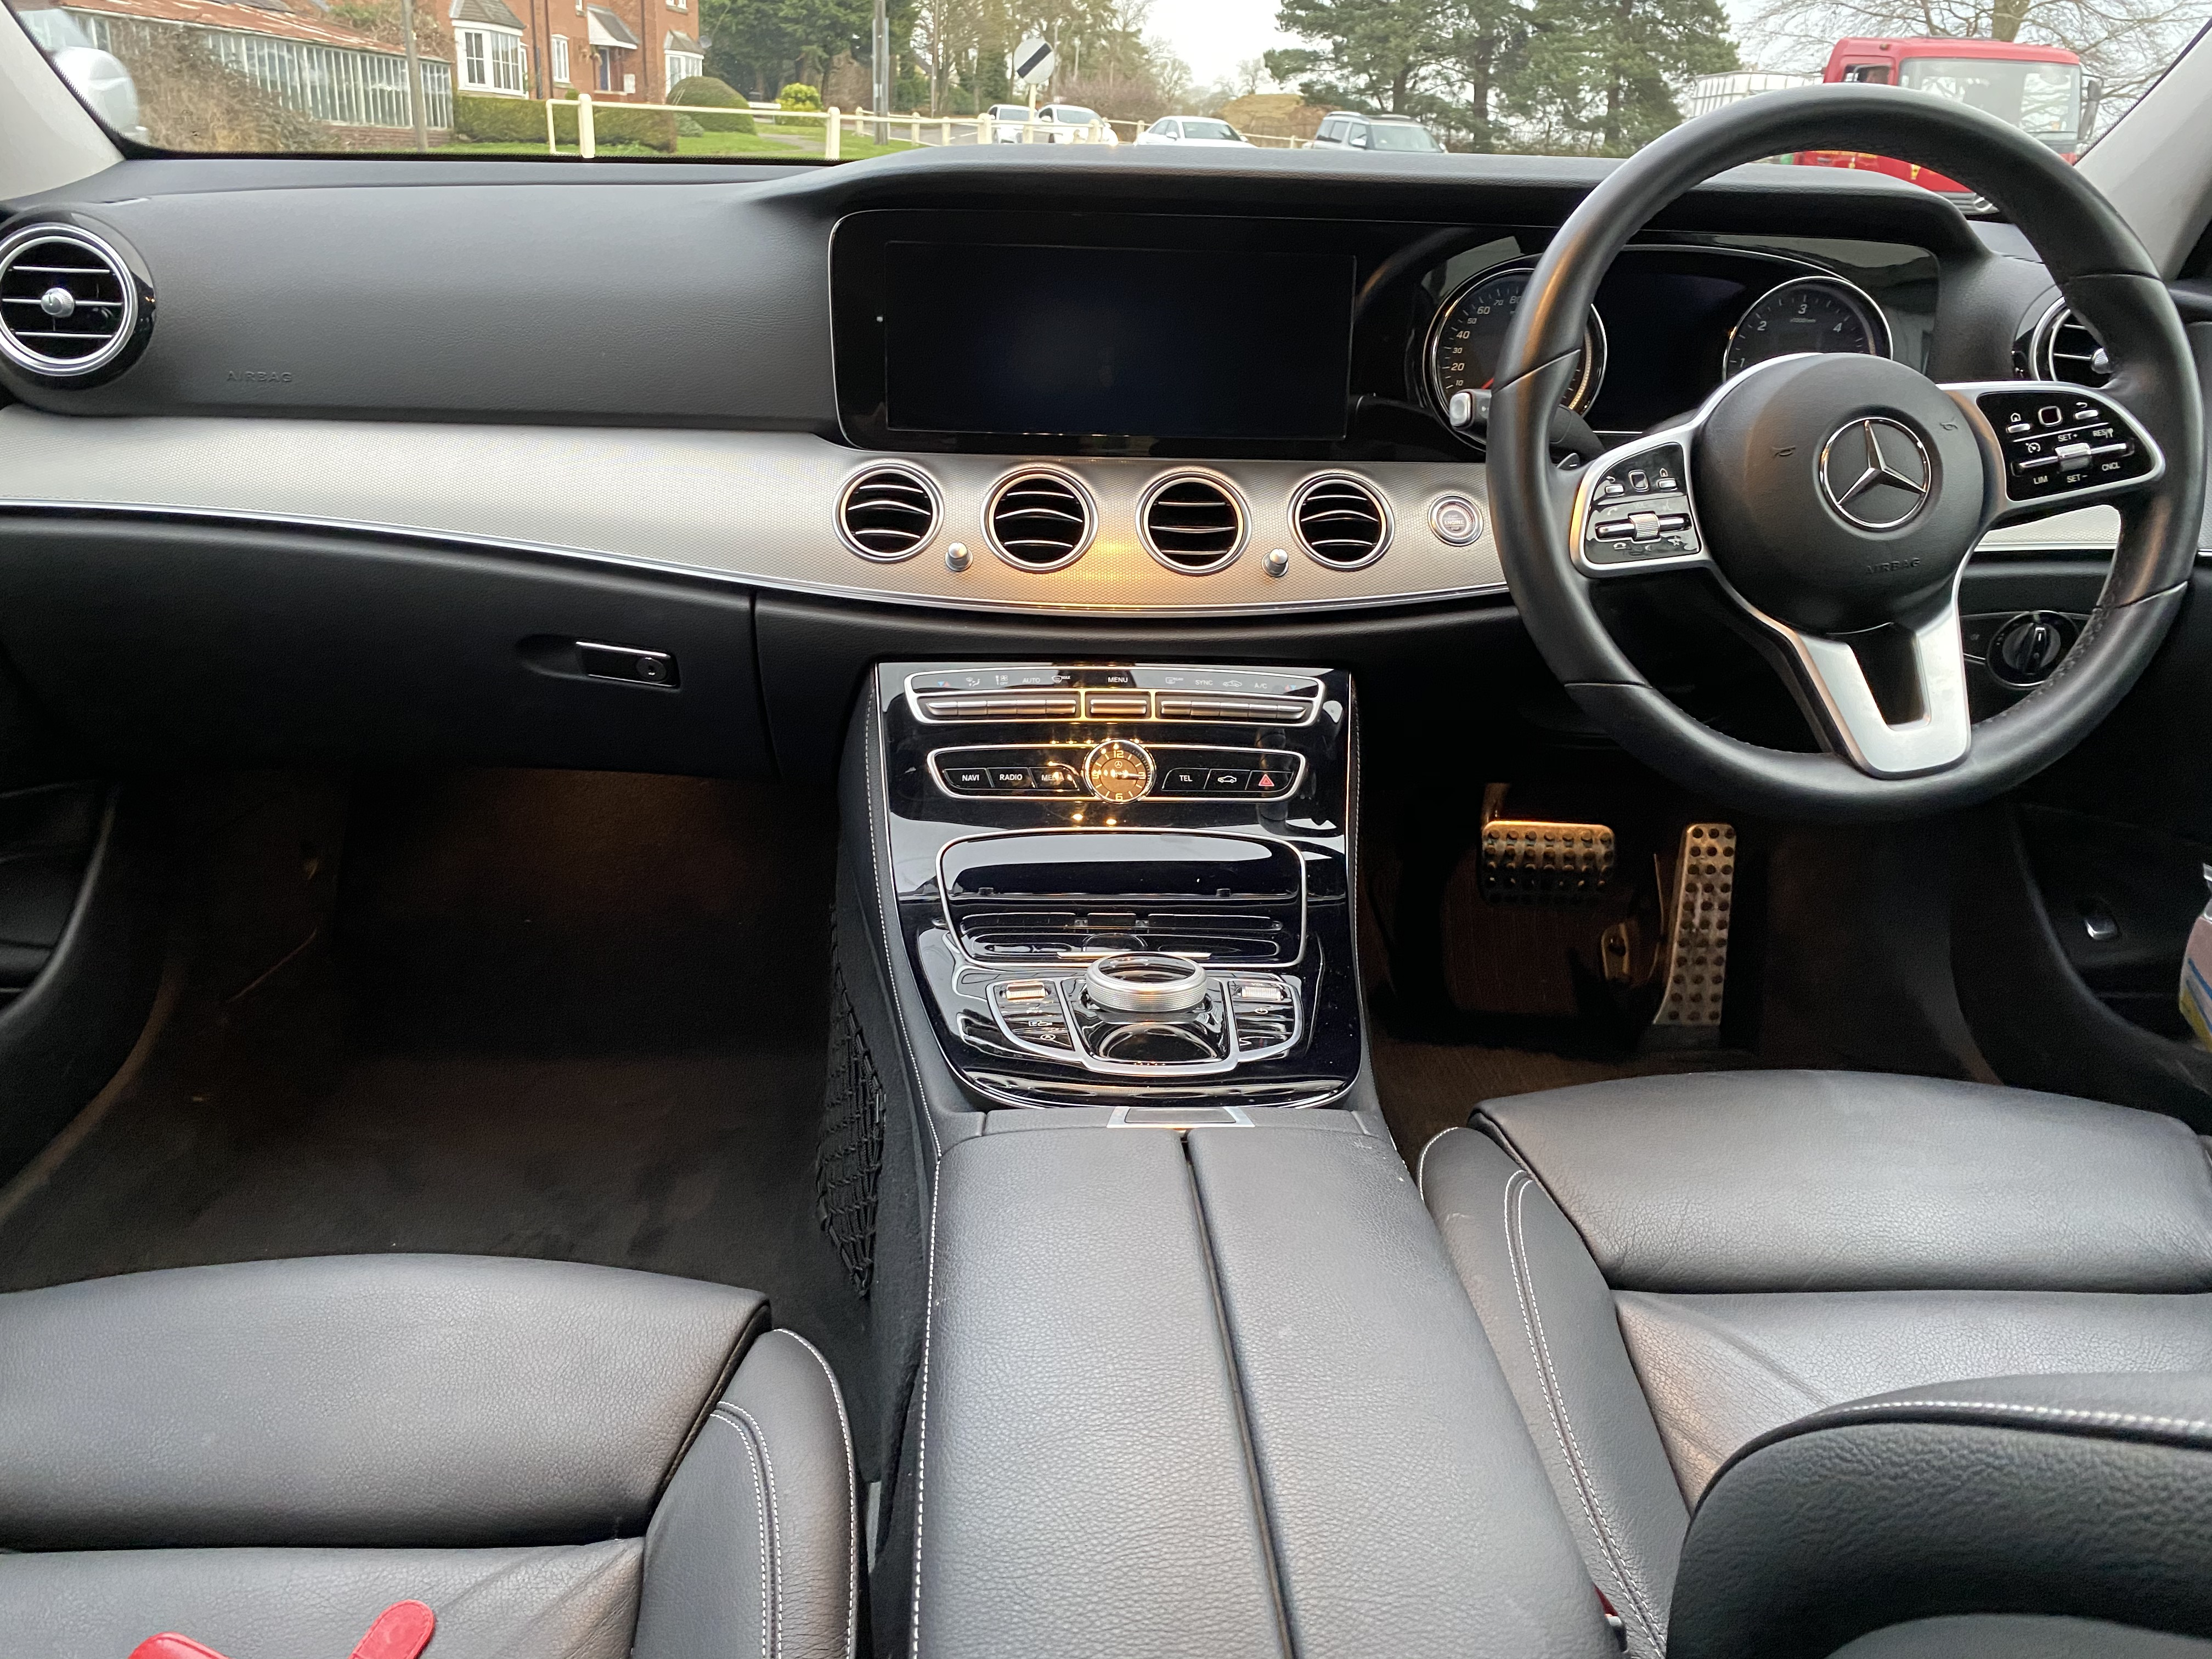 """ON SALE MERCEDES E220d """"SPECIAL EQUIPMENT"""" 9G-TRONIC (2019 MODEL) *GREAT SPEC*SAT NAV - LEATHER - Image 7 of 26"""